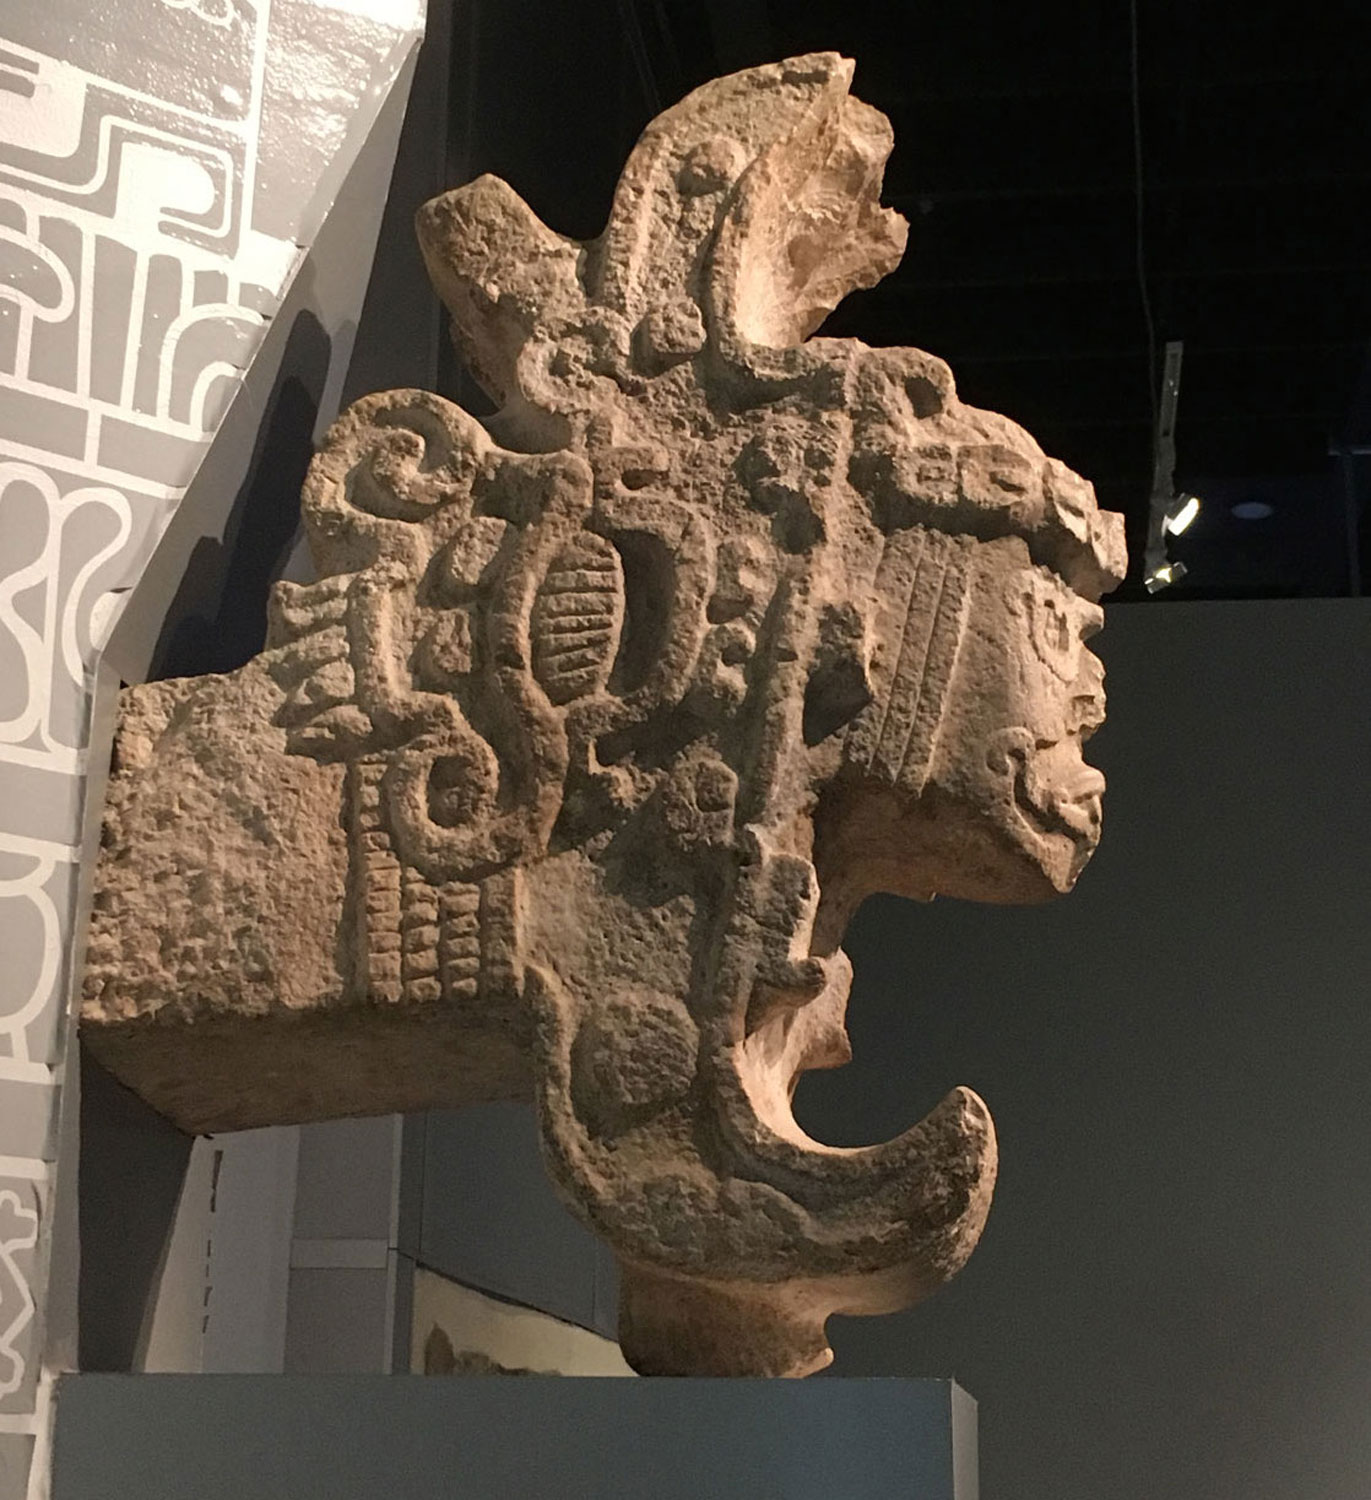 The 'Queen 'of Uxmal is a man coming out of a serpent's jaw, being born. I took the photo at the Mayan World Museum in Mérida.